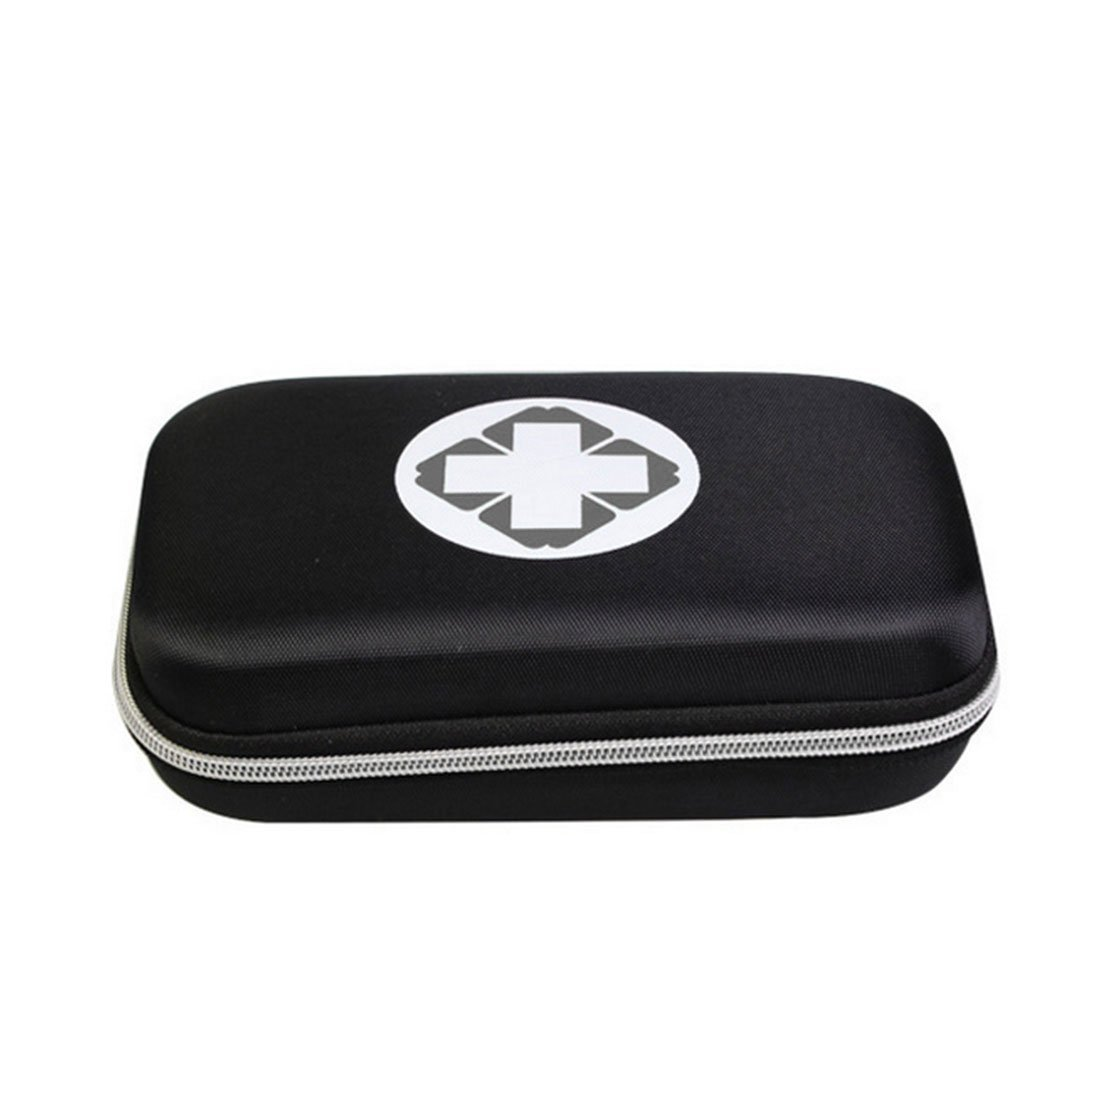 Lanticy First Aid Pouch Box, Empty Waterproof Medicine Storage Bag Portable Medical Package Emergency Medical Kit Survival Medicine Pills Pocket Container Perfect for Home Car Travel Outdoor (Black)